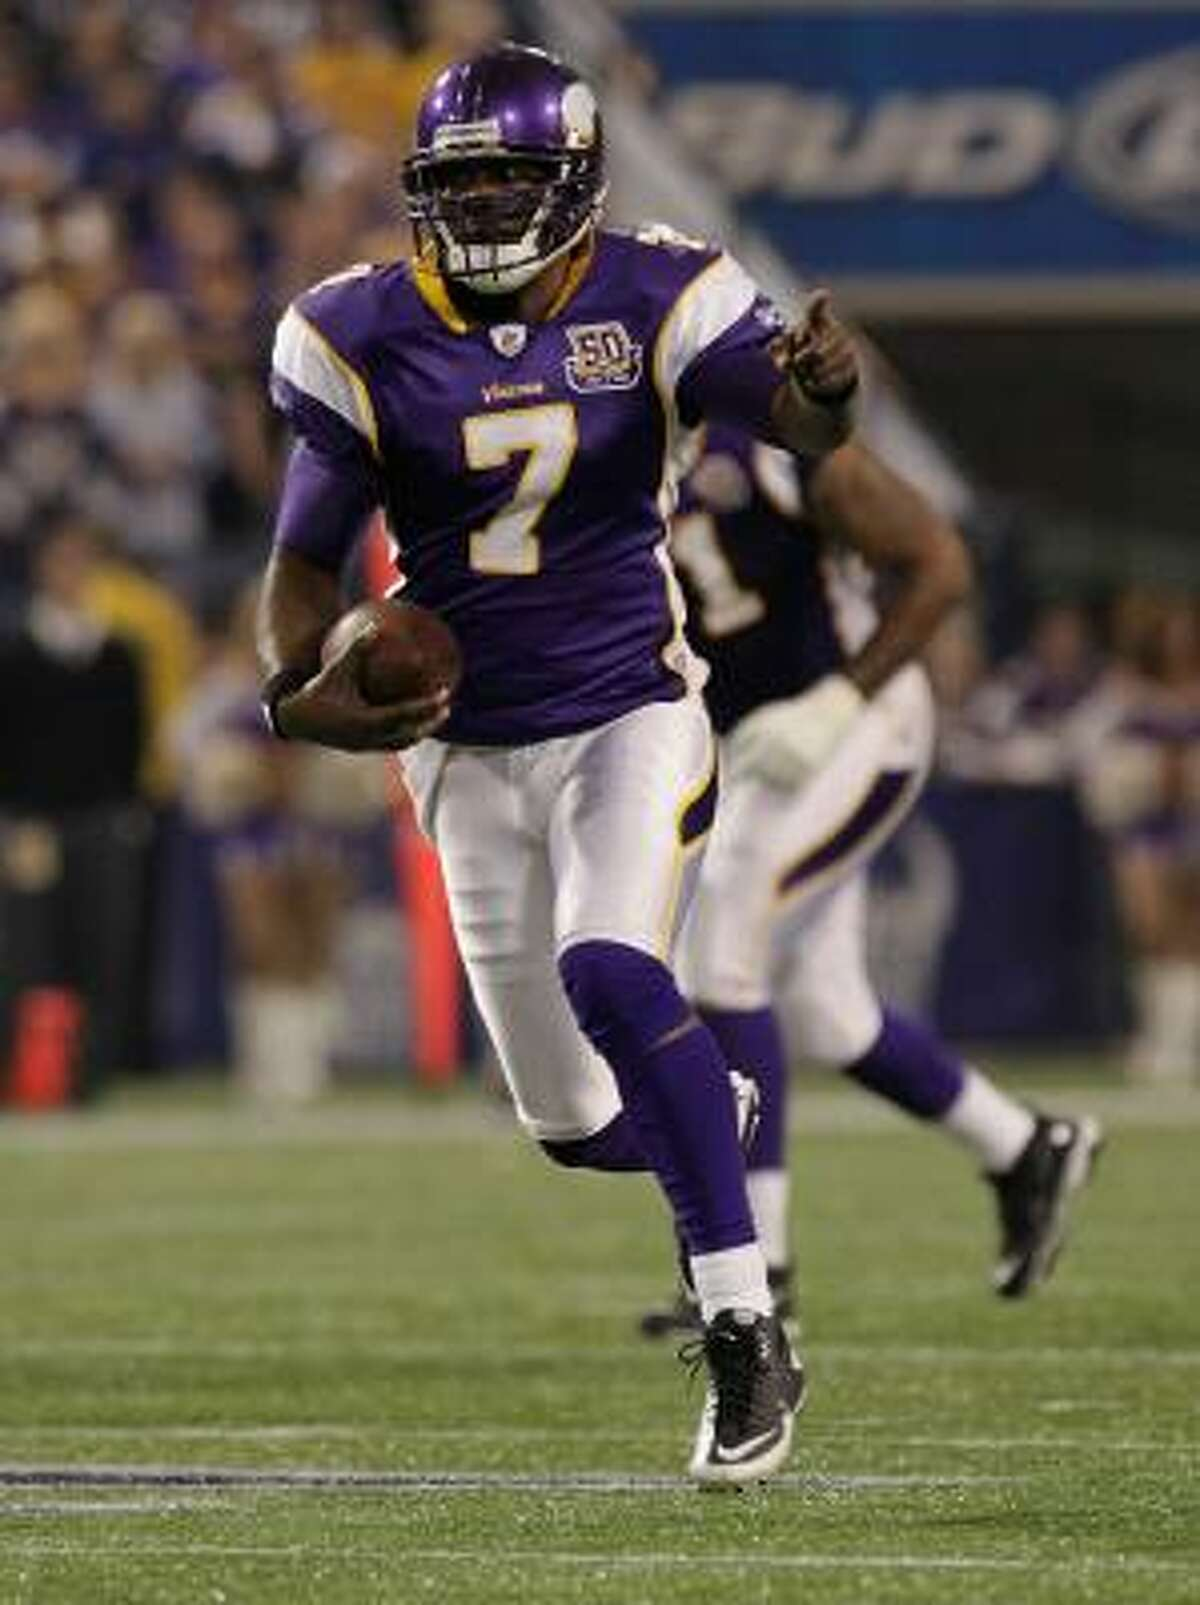 Vikings 38, Bills 14 Vikings quarterback Tavaris Jackson filled in for an injured Brett Favre and guided his team to a win at home.